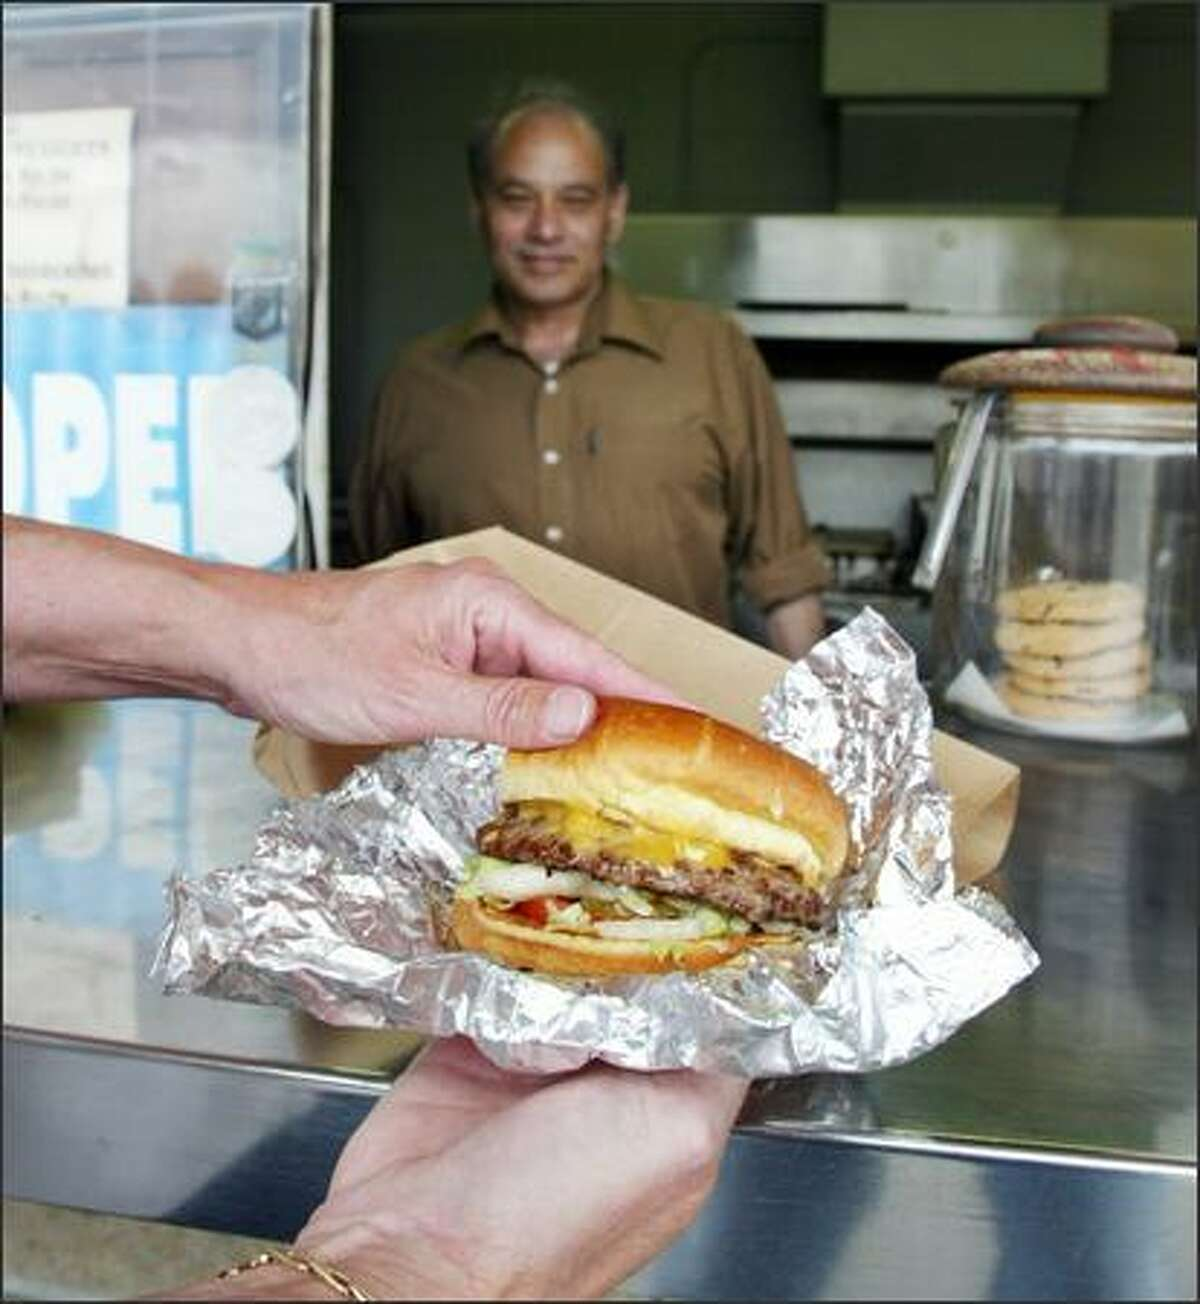 A customer checks out her cheddar burger at Gordo's, run by Paul Sharma (pictured) and his family.